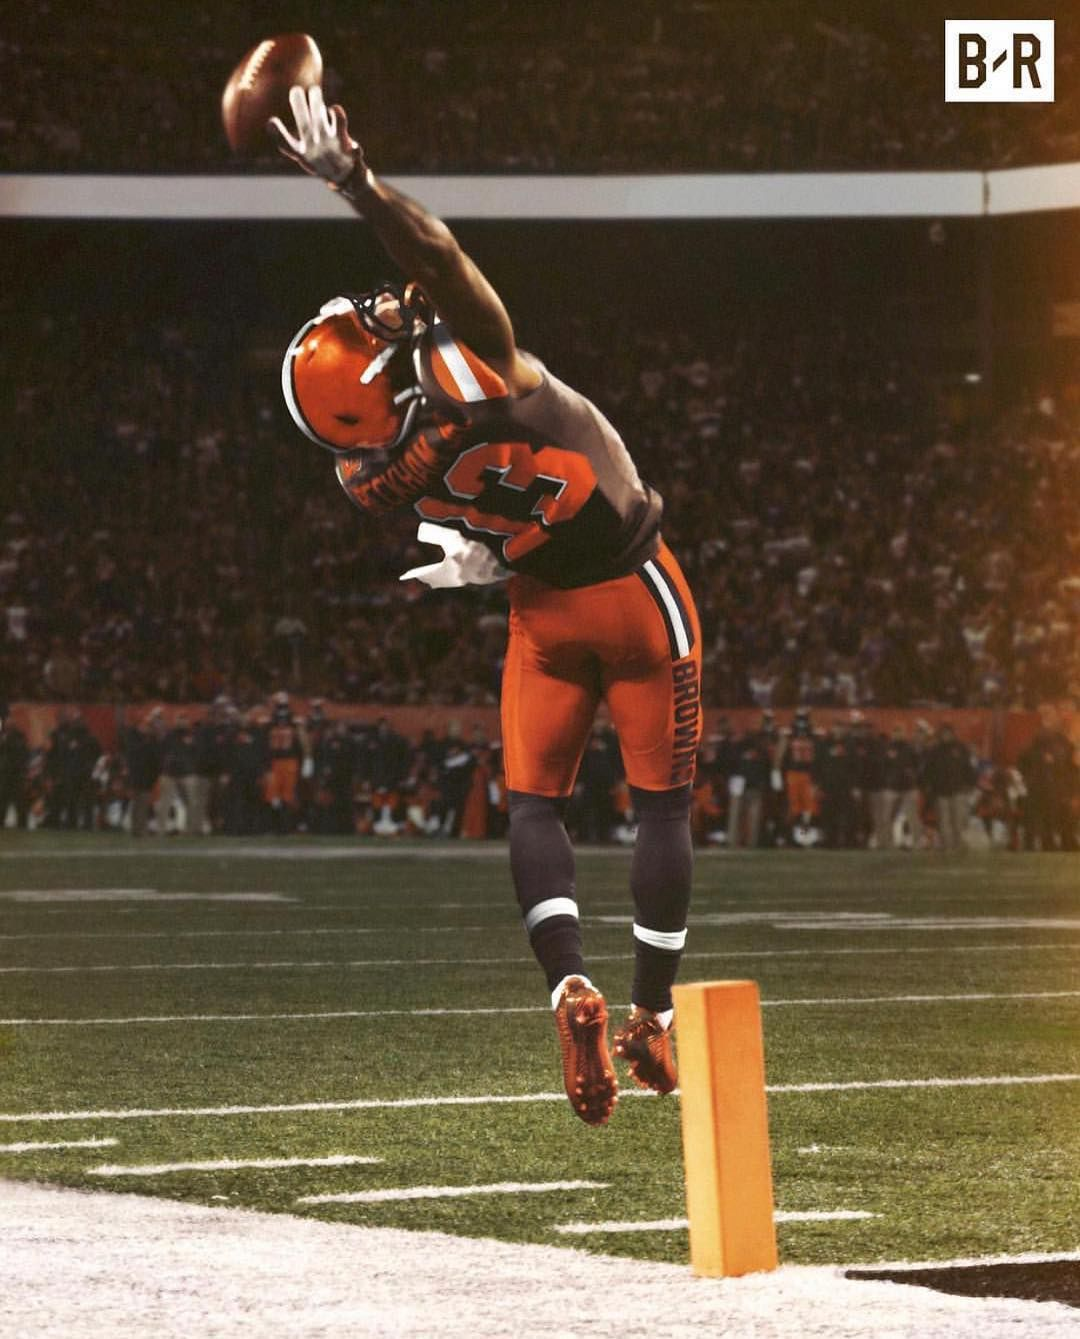 Image May Contain One Or More People People Playing Sports Football And Outdoor Browns Football Nfl Football Players Cleveland Browns Football